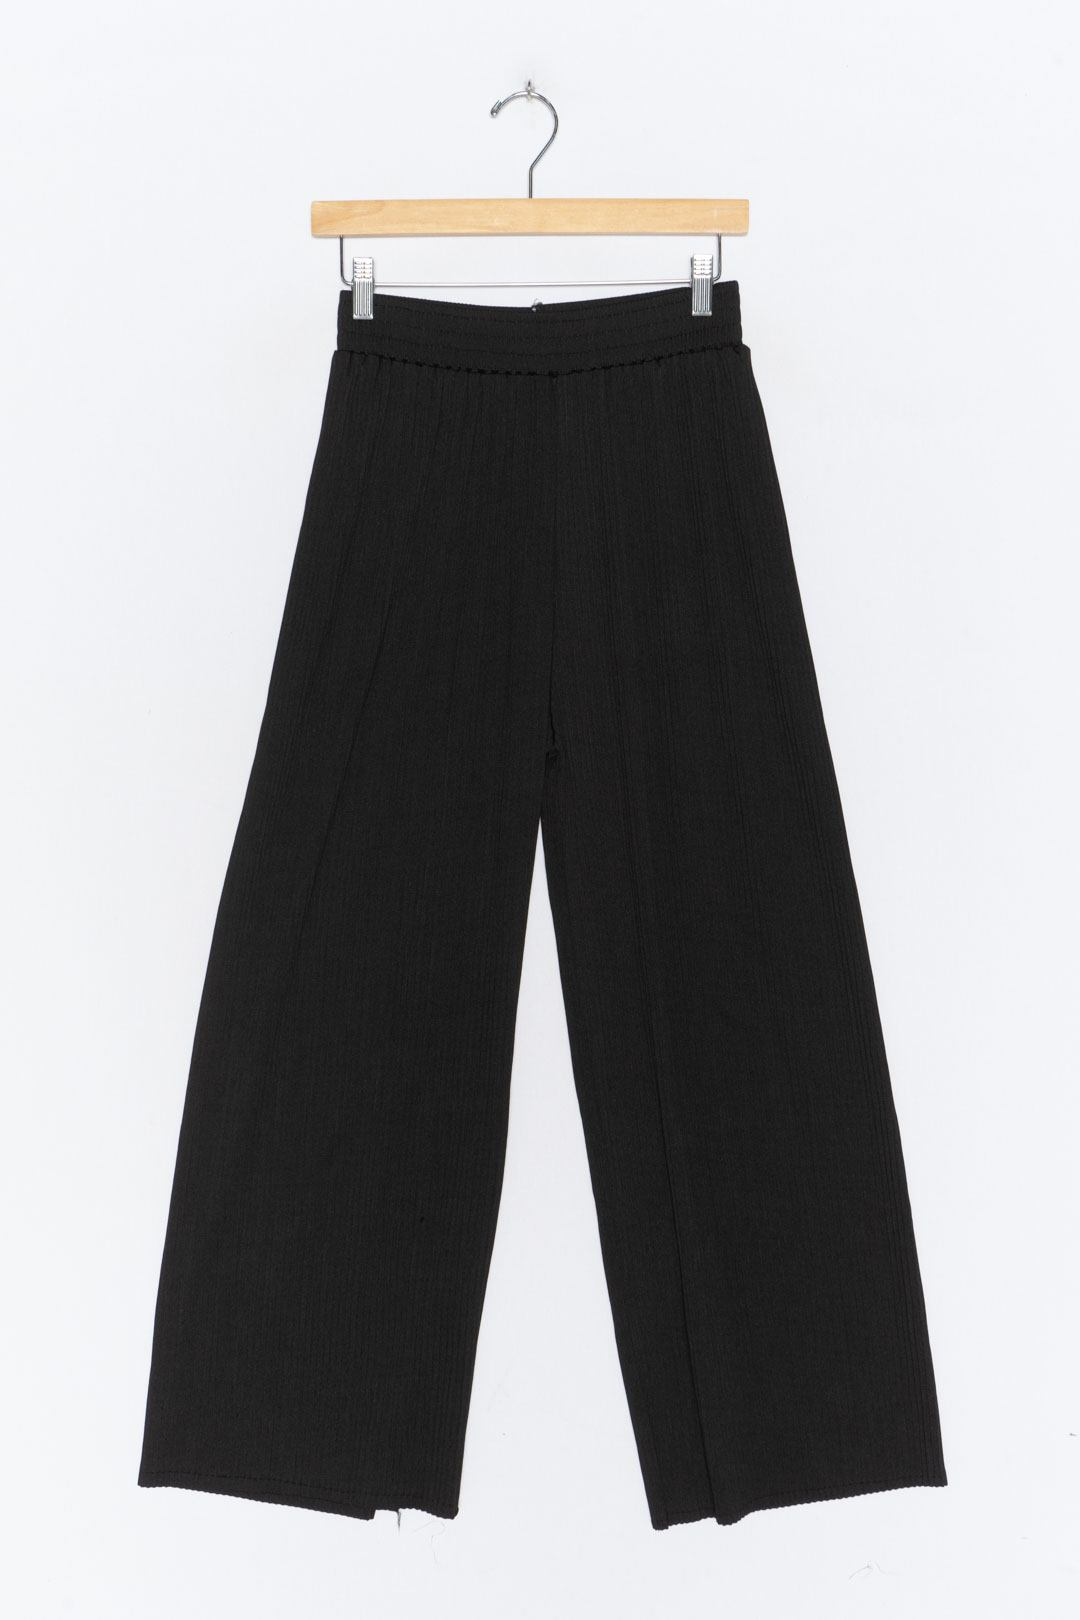 Black Pleated Culottes M - VinoKilo.com